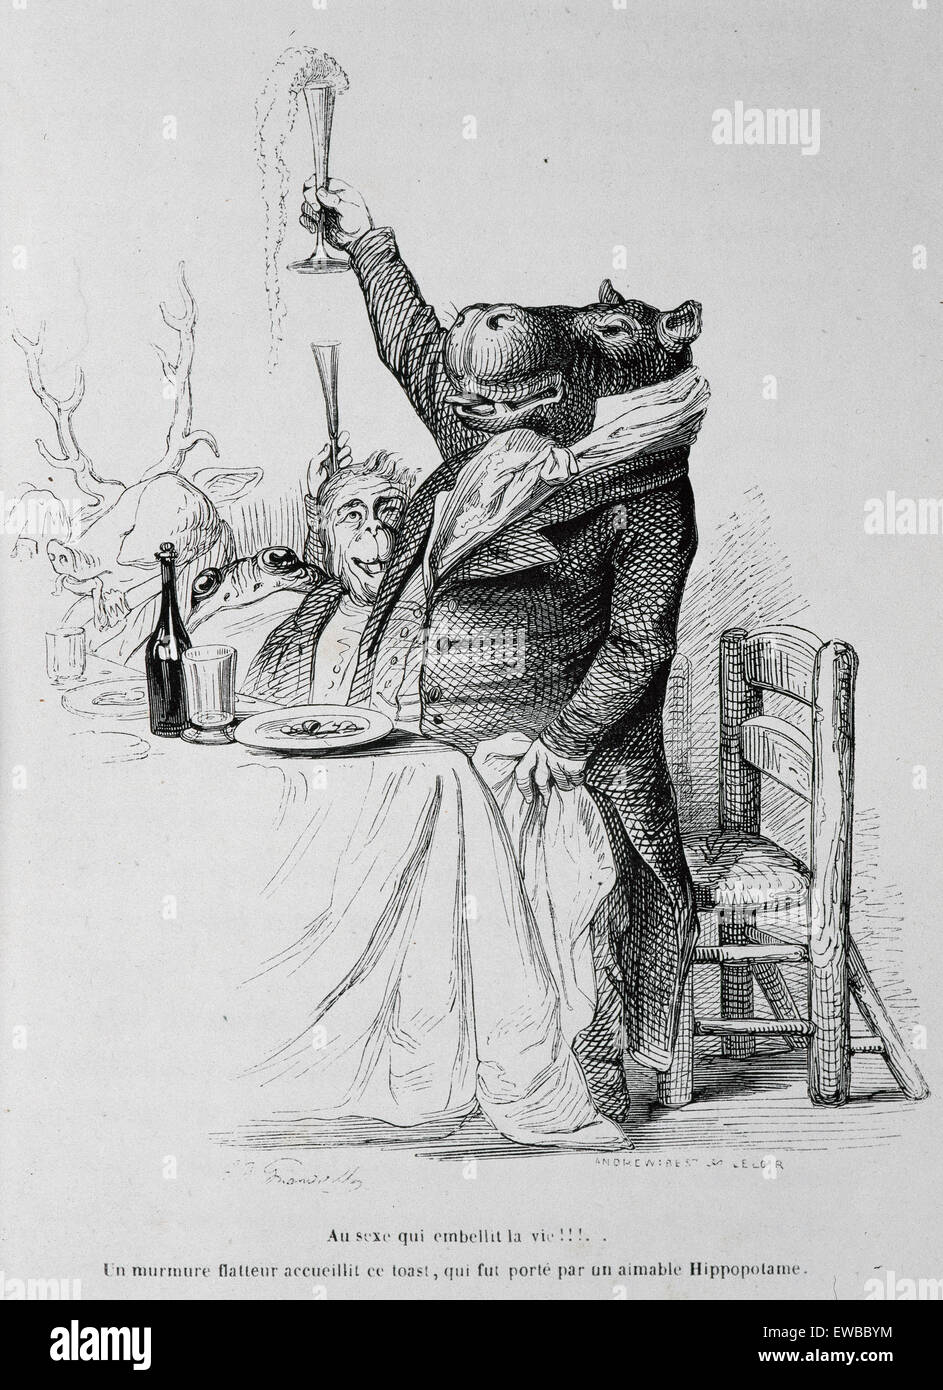 J.J. Grandville (pseudonym of Jean Ignace Isidore Gerard) (1803-1847). French caricaturist. The private and public - Stock Image